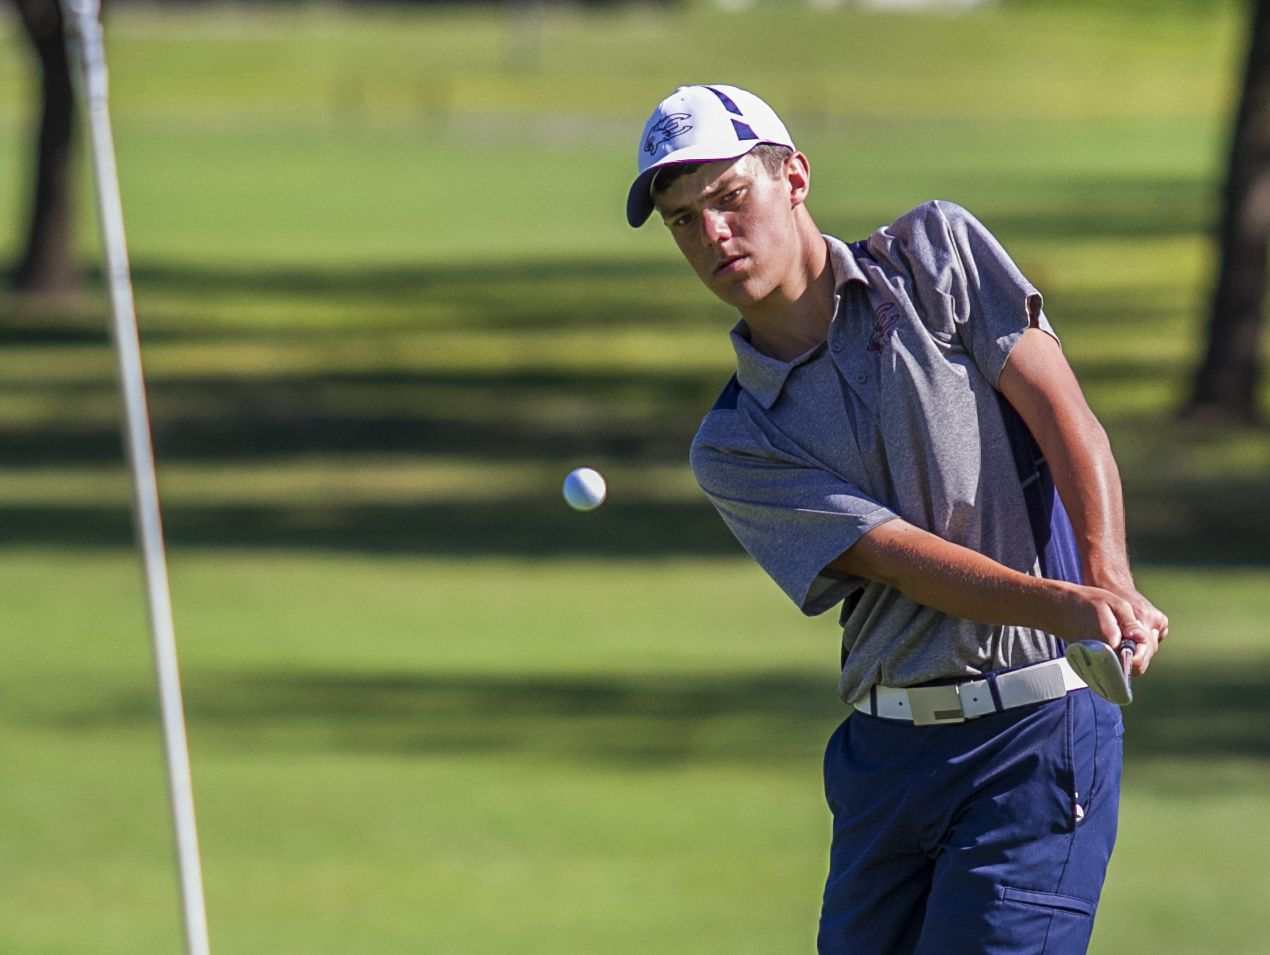 Jonah Manning, a member of the Estero High School golf team, chips onto the third green while playing in the FHSAA class 2A Region 7 tournament Monday morning at Palmetto-Pine Country Club in Cape Coral.